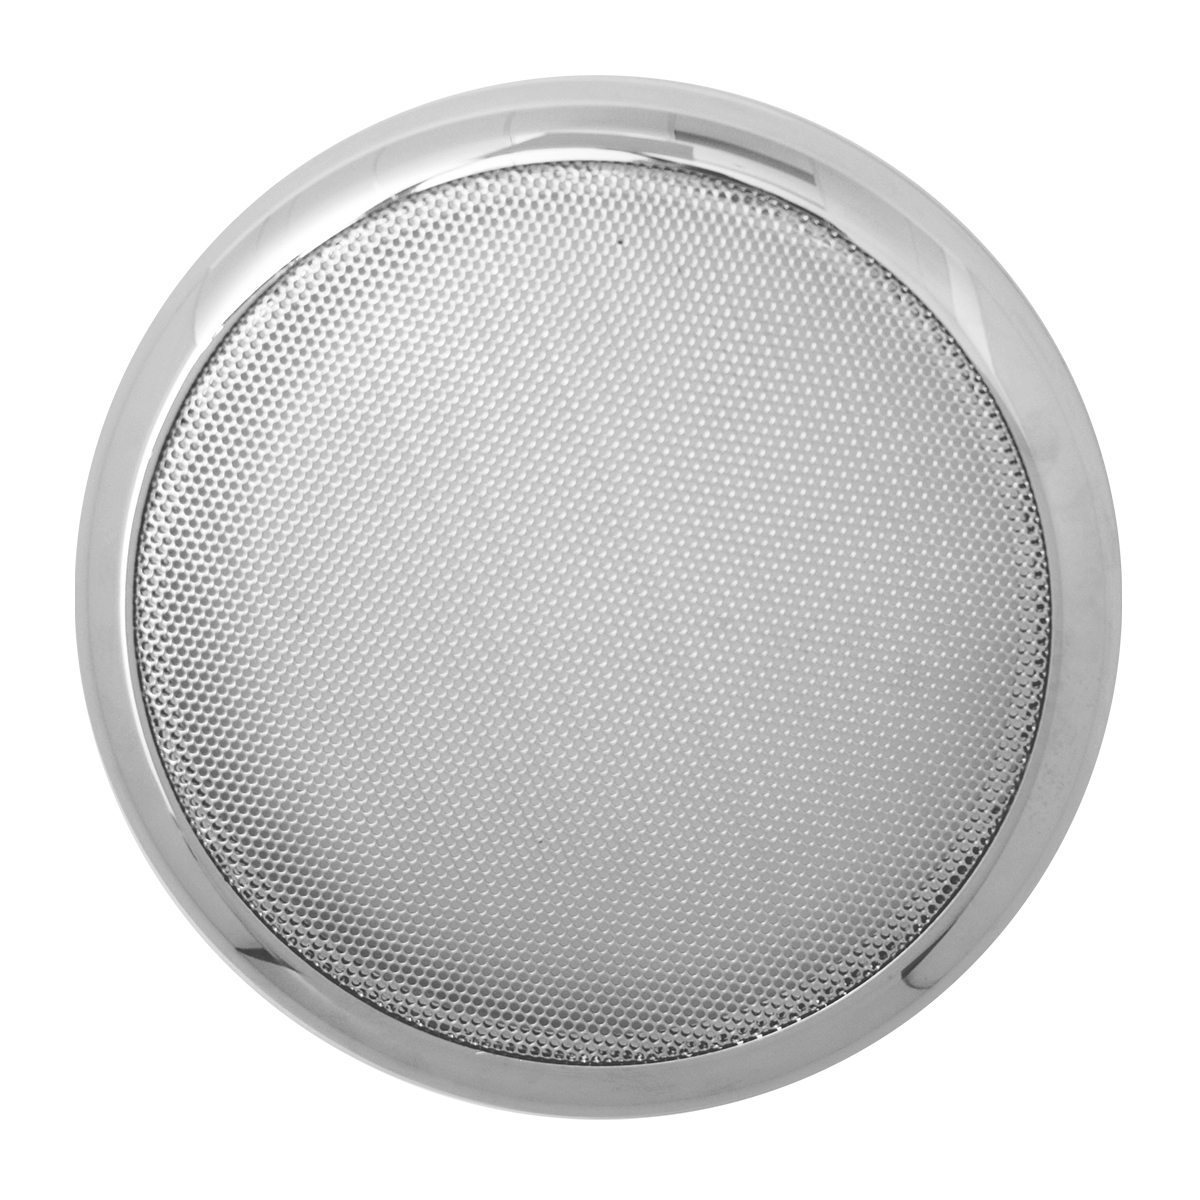 52027 Round Speaker Cover w/ Chrome Screen for Peterbilt